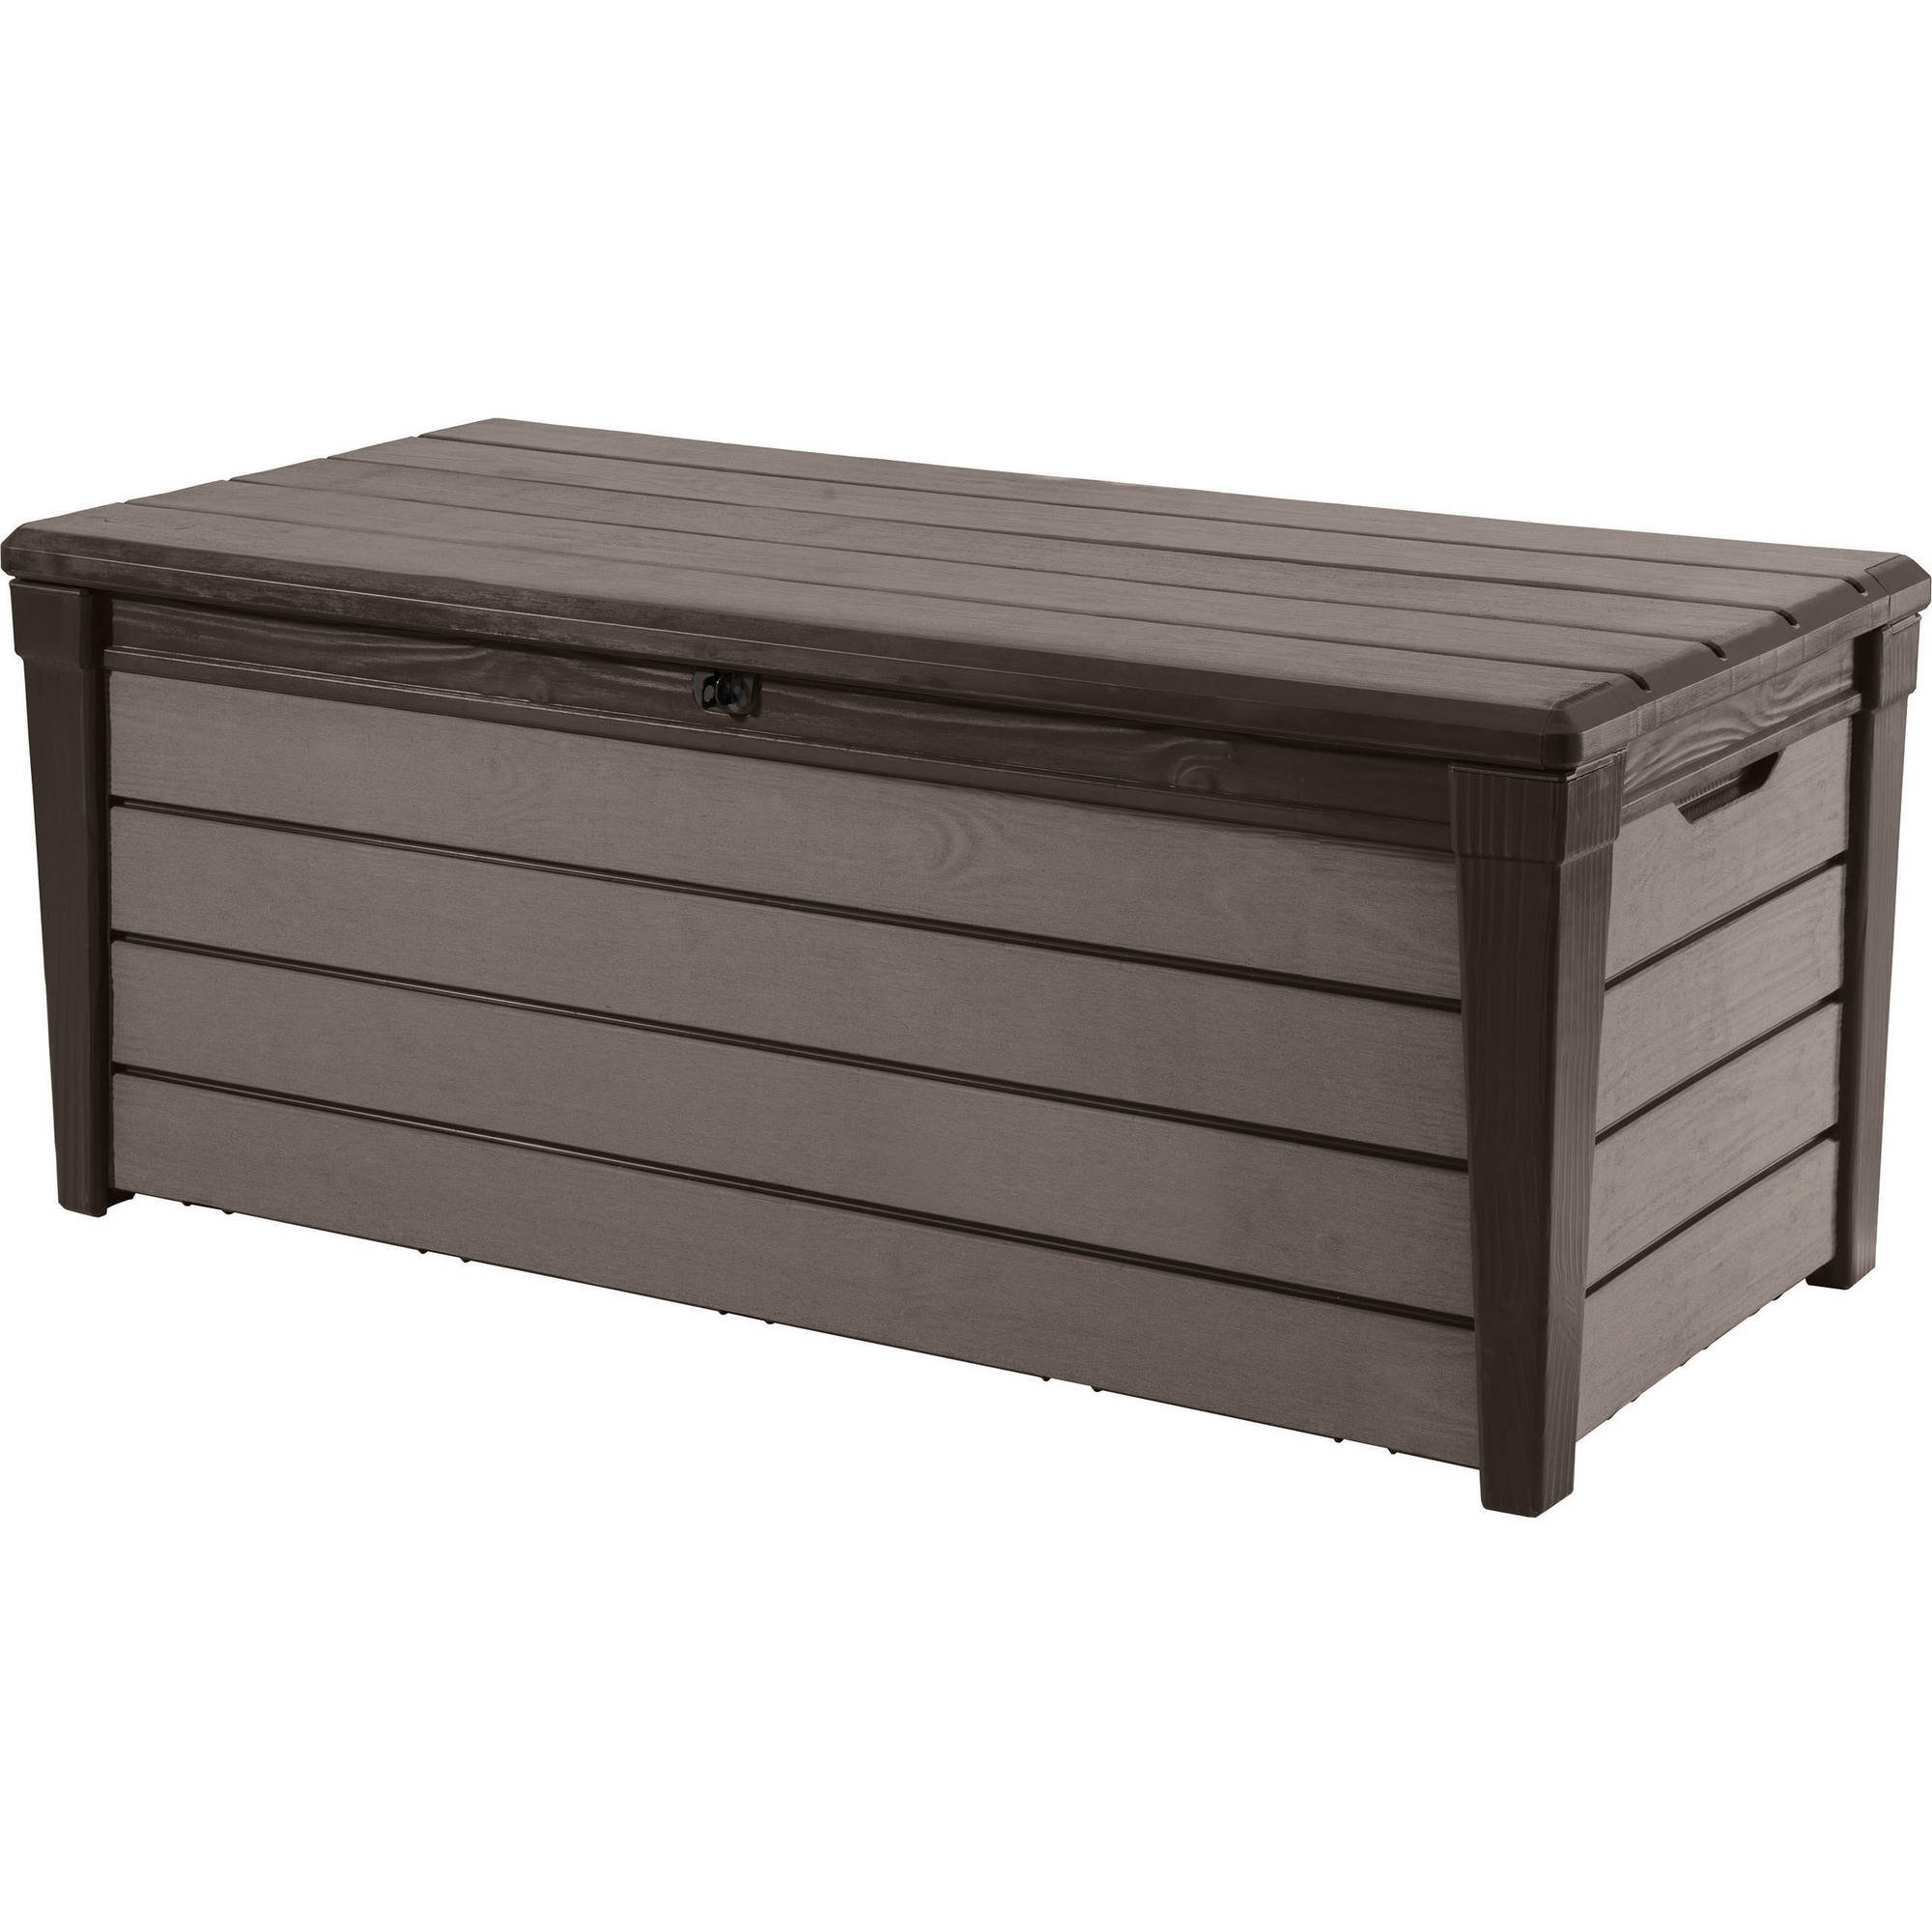 Keter Brushwood 120-Gal Outdoor Storage Deck Box, Espresso Brown